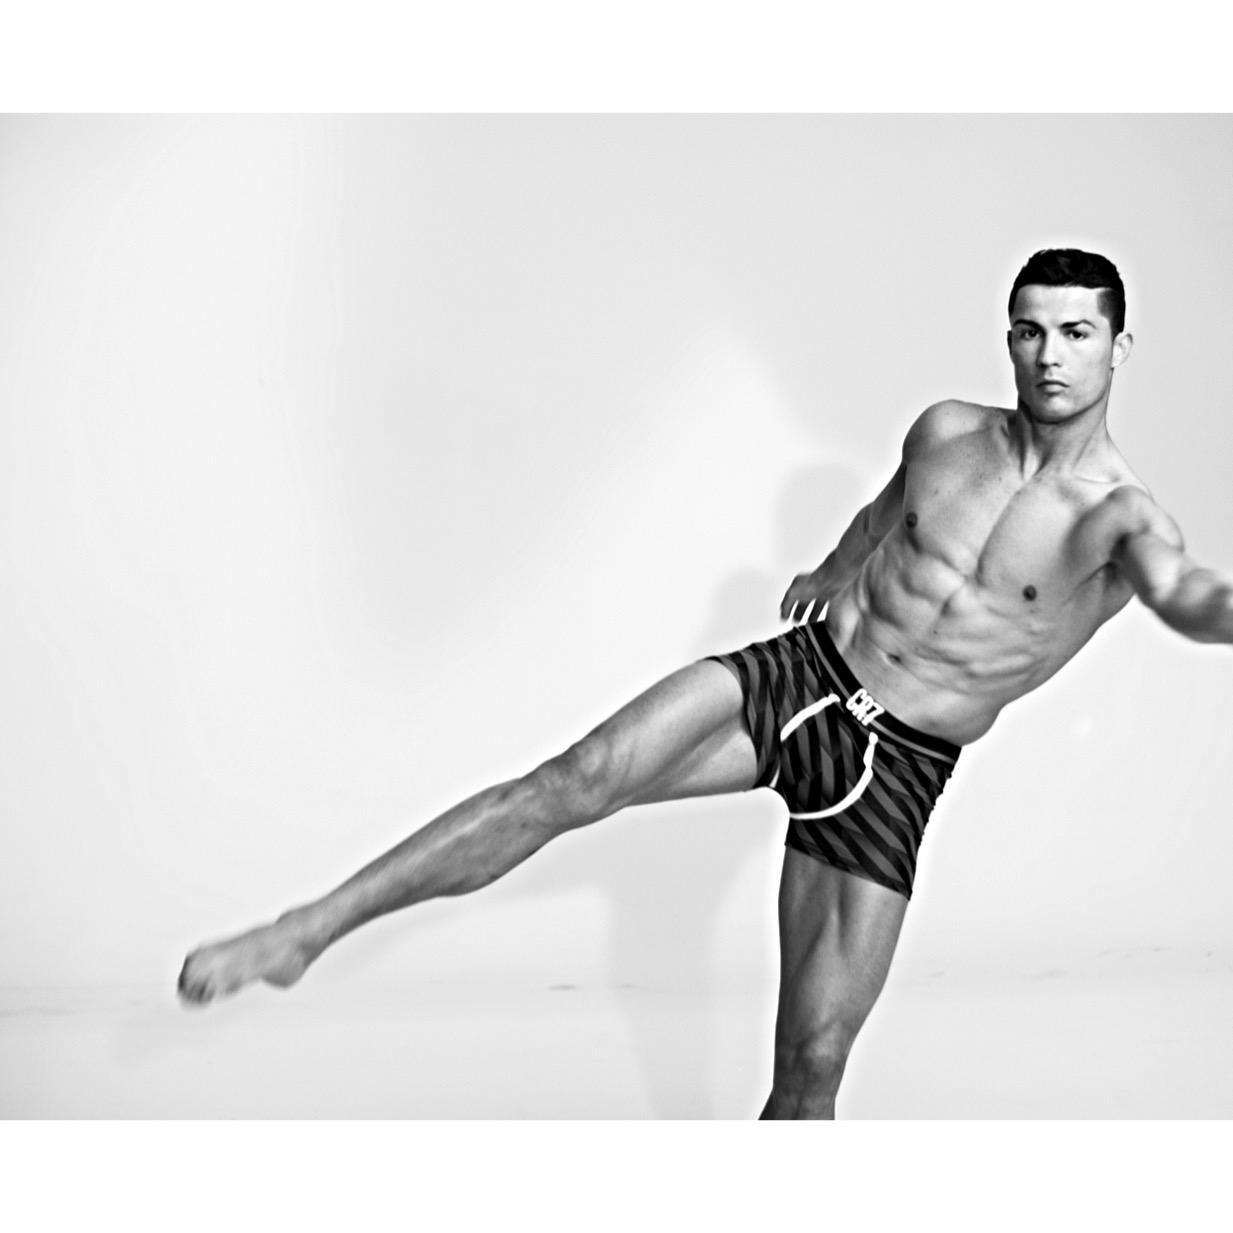 Exclusive image from my latest #CR7Underwear shoot! Love the new collection - check it out now http://t.co/RCLtRbCAT7 http://t.co/NcEAOxIknb